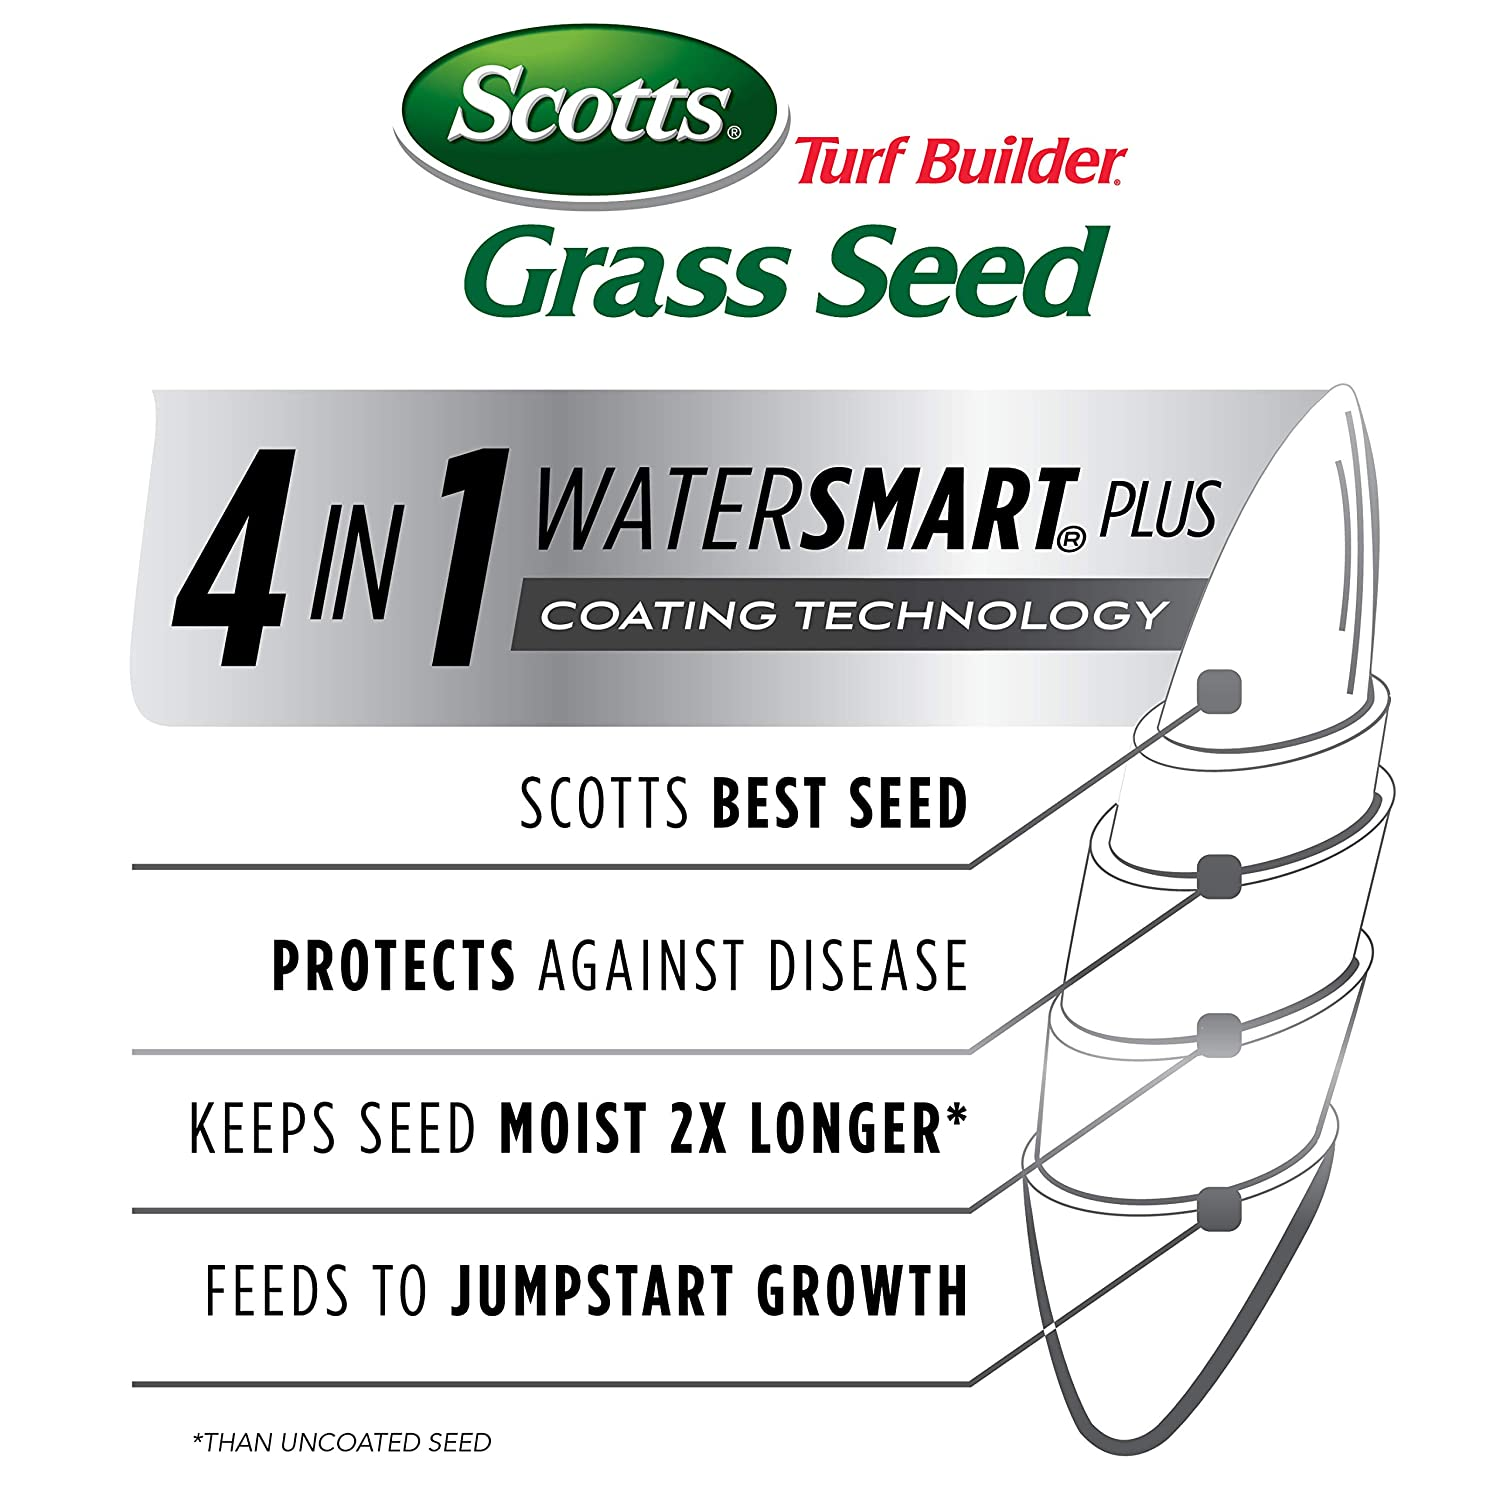 Grows Deep Roots For A Durable Scotts Turf Builder Grass Seed Tall Fescue Mix Livable Lawn Use to Seed New Lawn or Overseed Existing Lawn   Designed For Full Sun /& Shade 3 Lb 99.9/% Weed Free High Drought Resistance